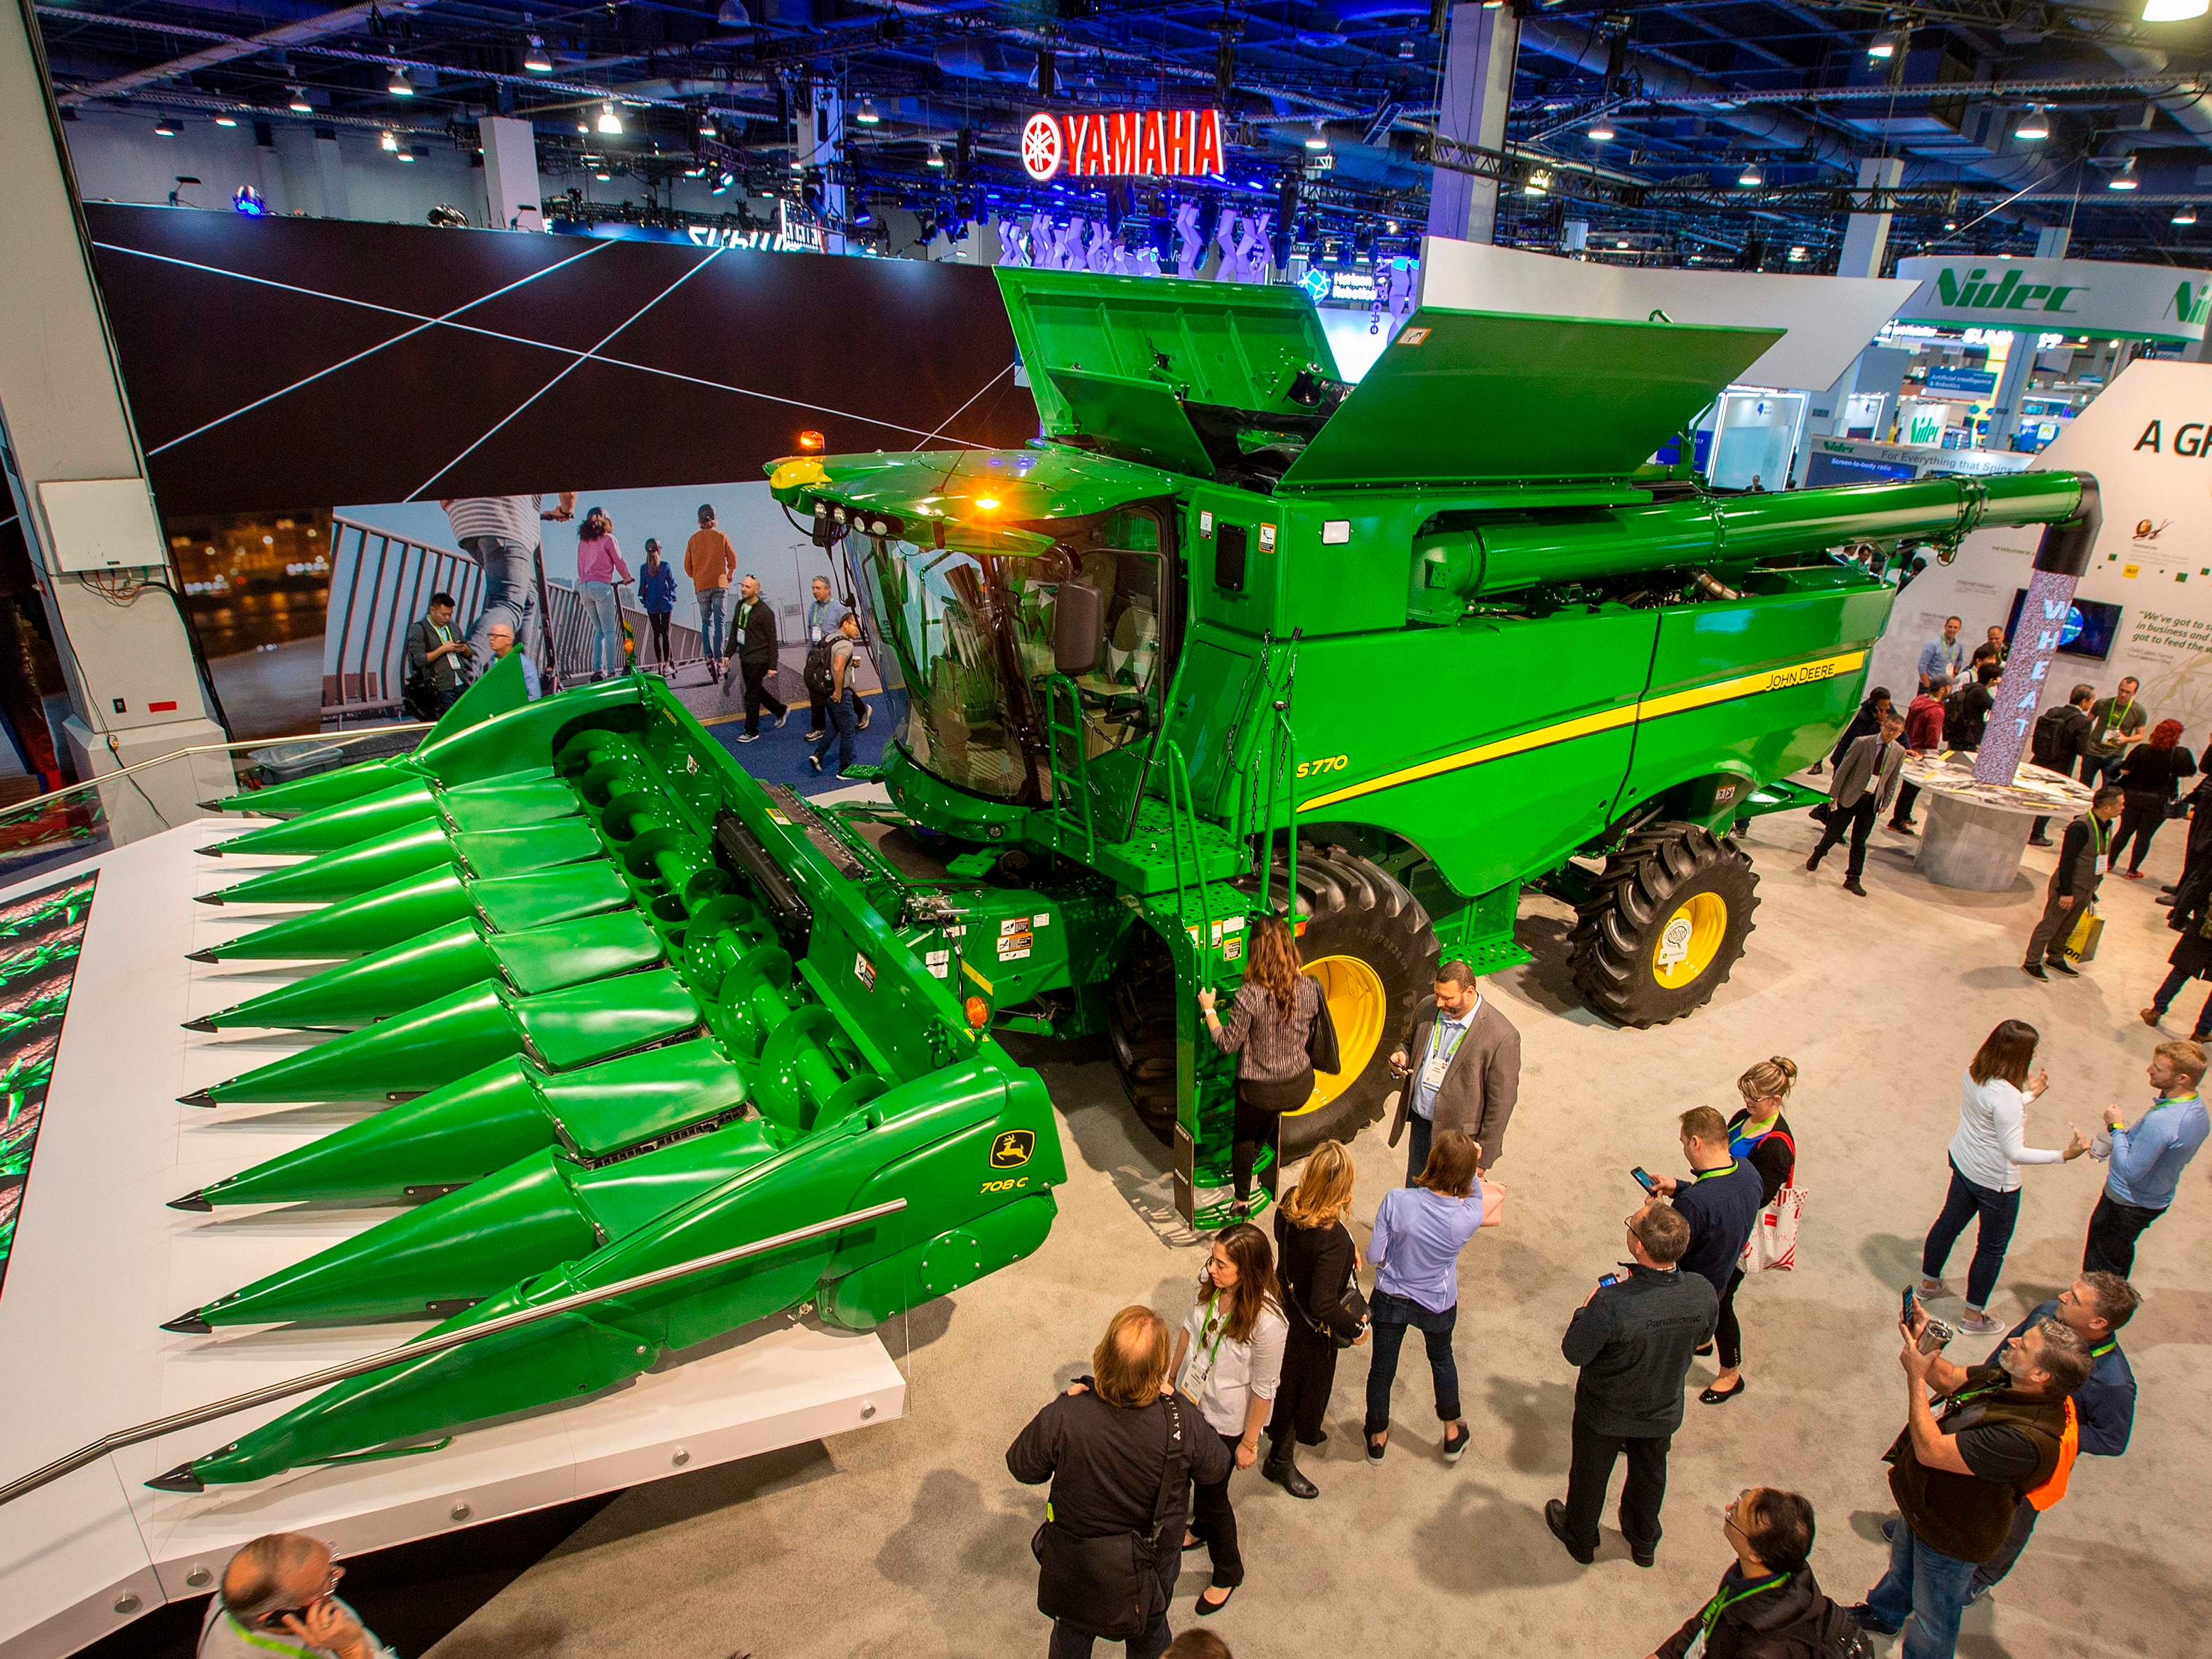 A John Deere s770 combine with AI capabilities.